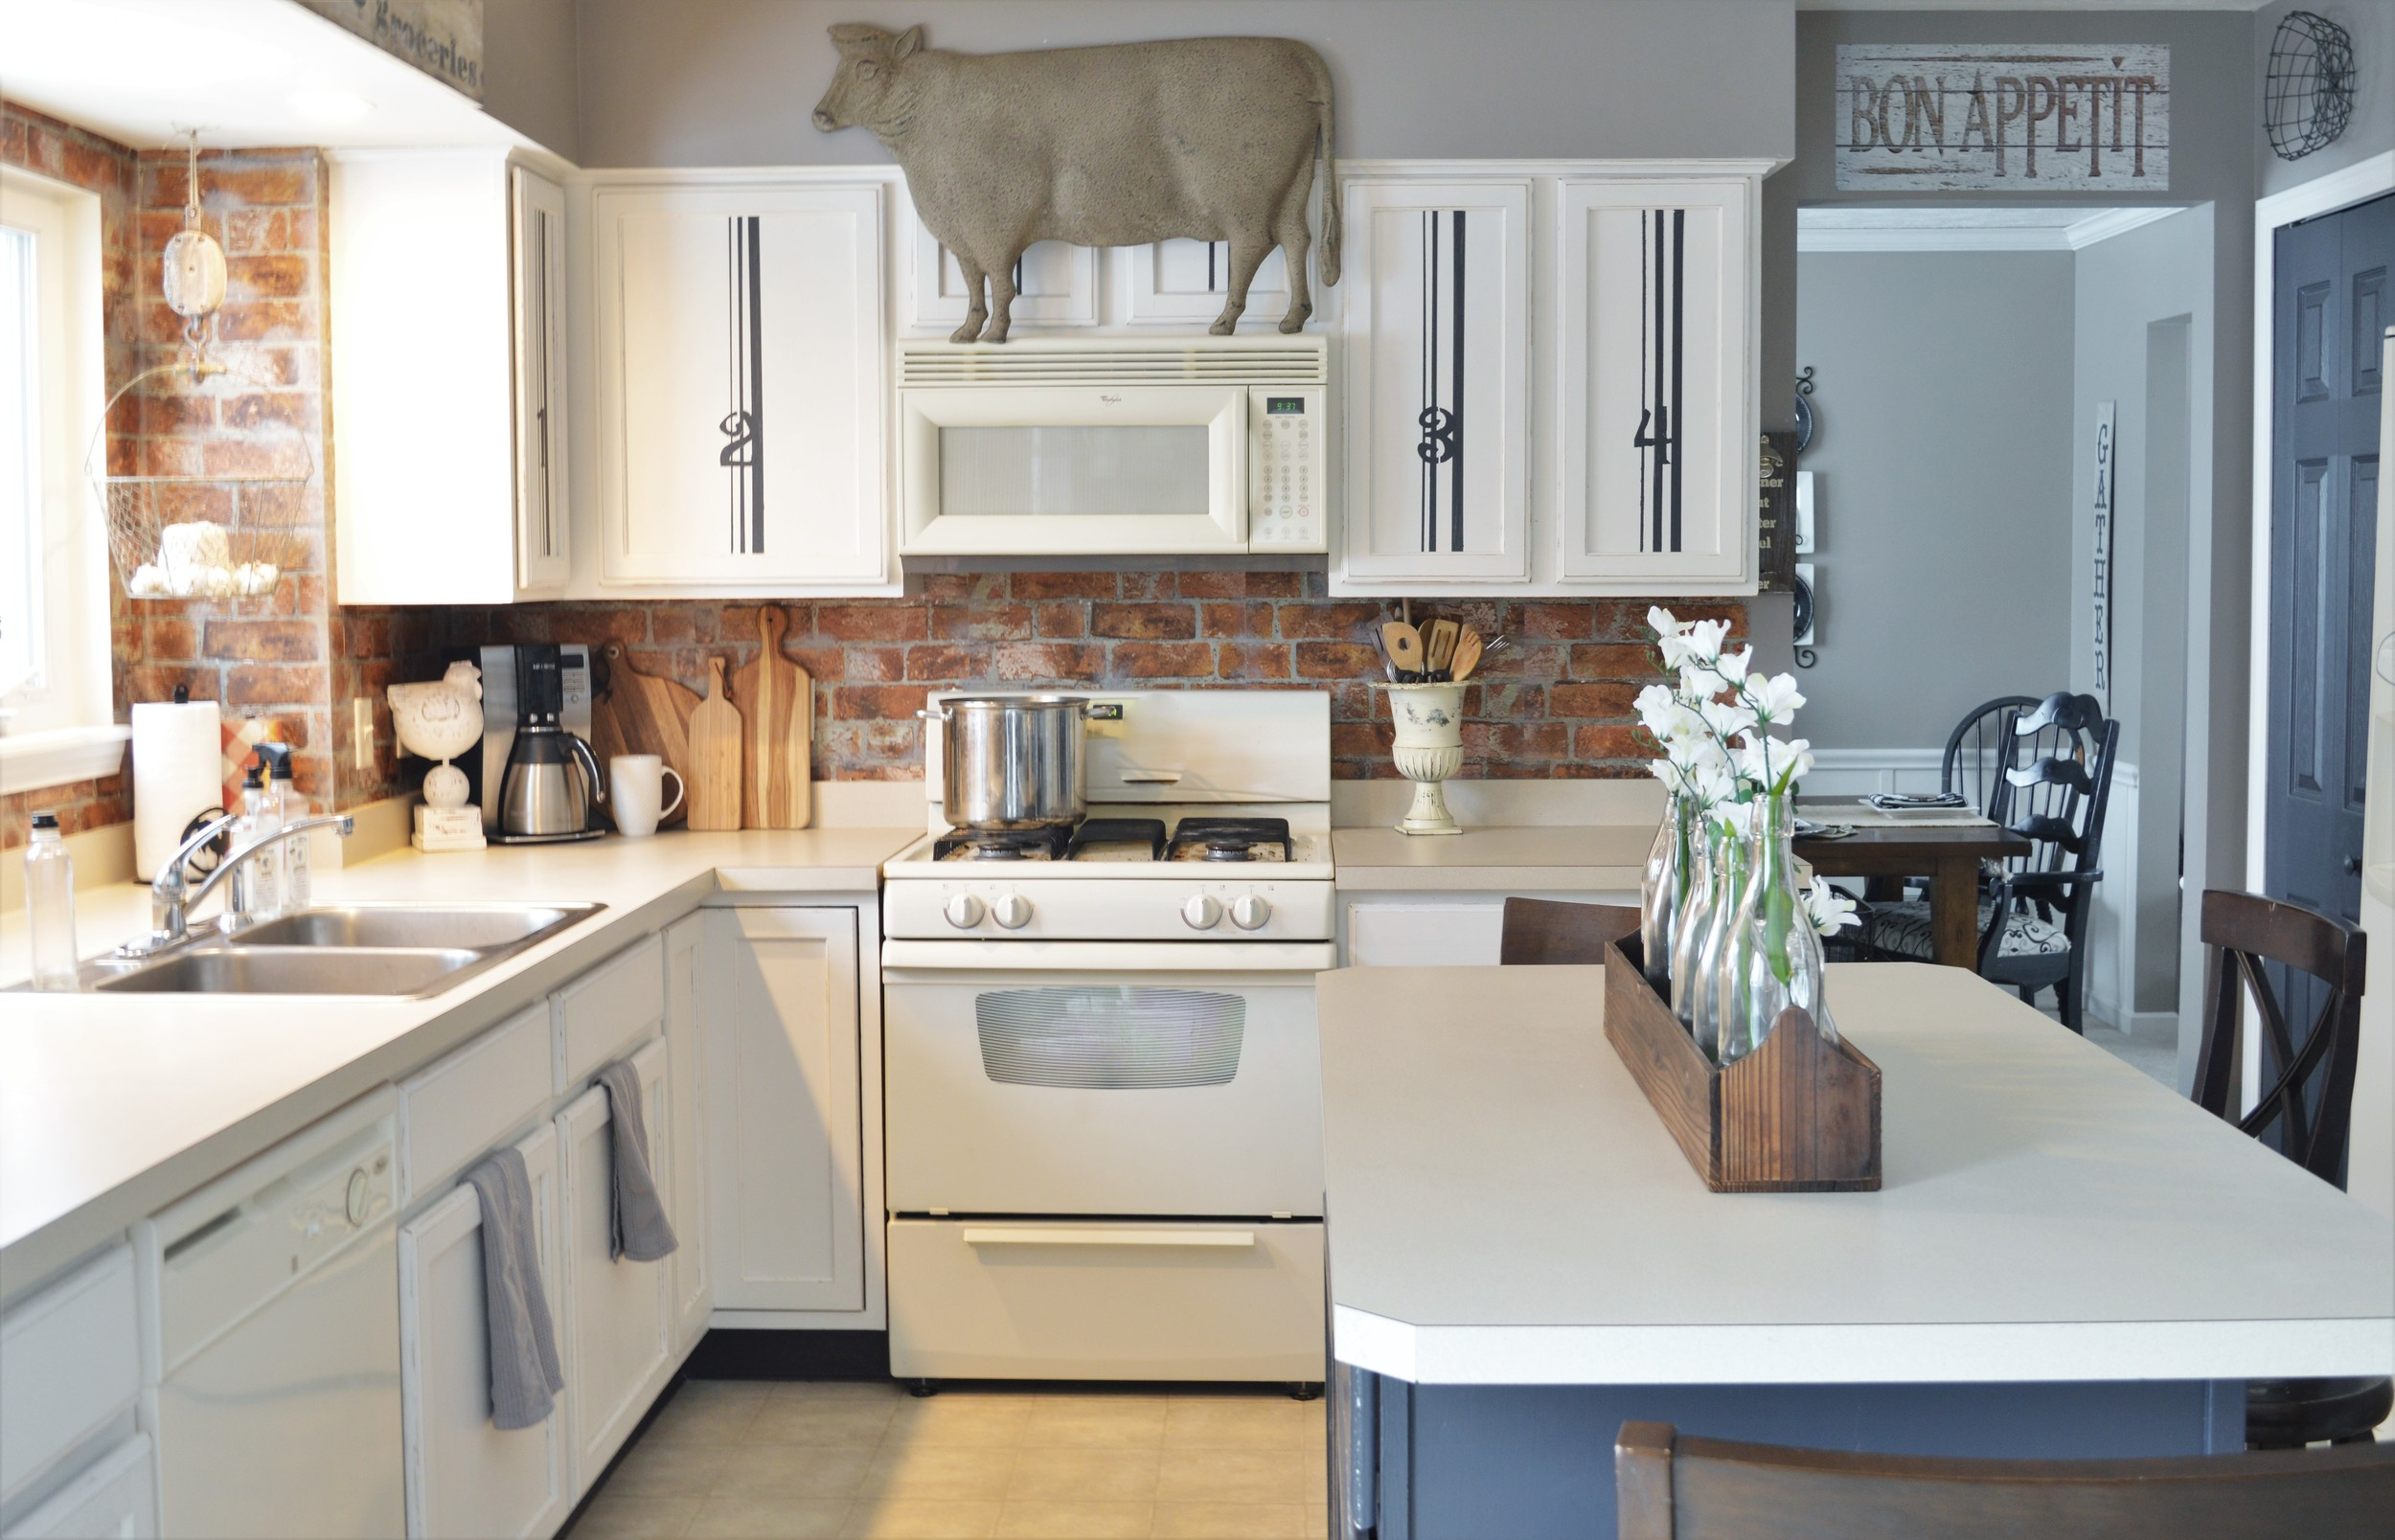 Painted Kitchen Cabinets Adding Farmhouse Character — The Other